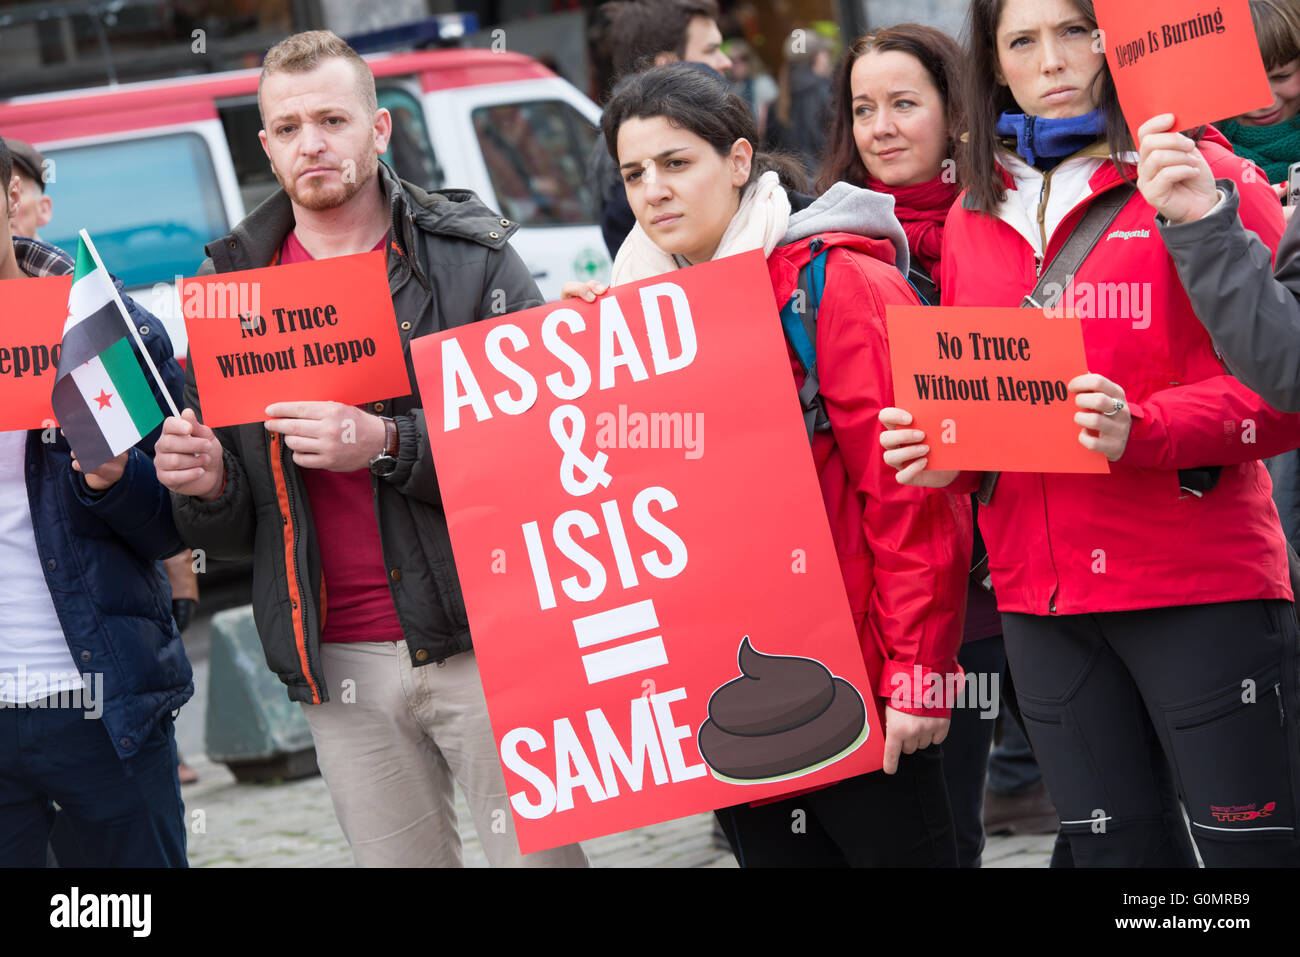 Syrian refugees protest President Bashar al-Assad during the May Day parade in Oslo, Norway, May 1, 2016. - Stock Image